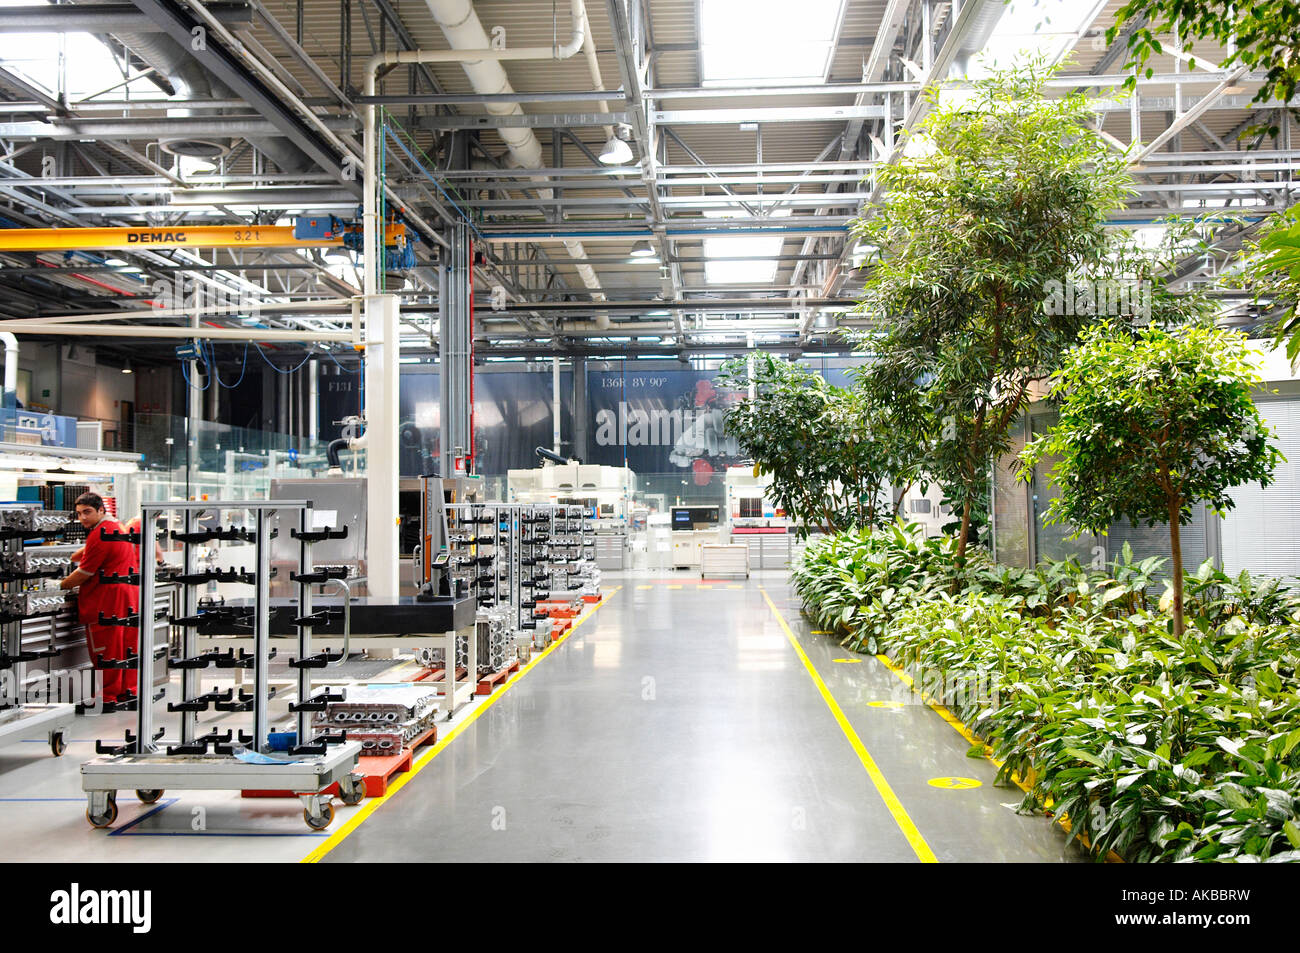 Page 2 Ferrari Factory Maranello Italy High Resolution Stock Photography And Images Alamy